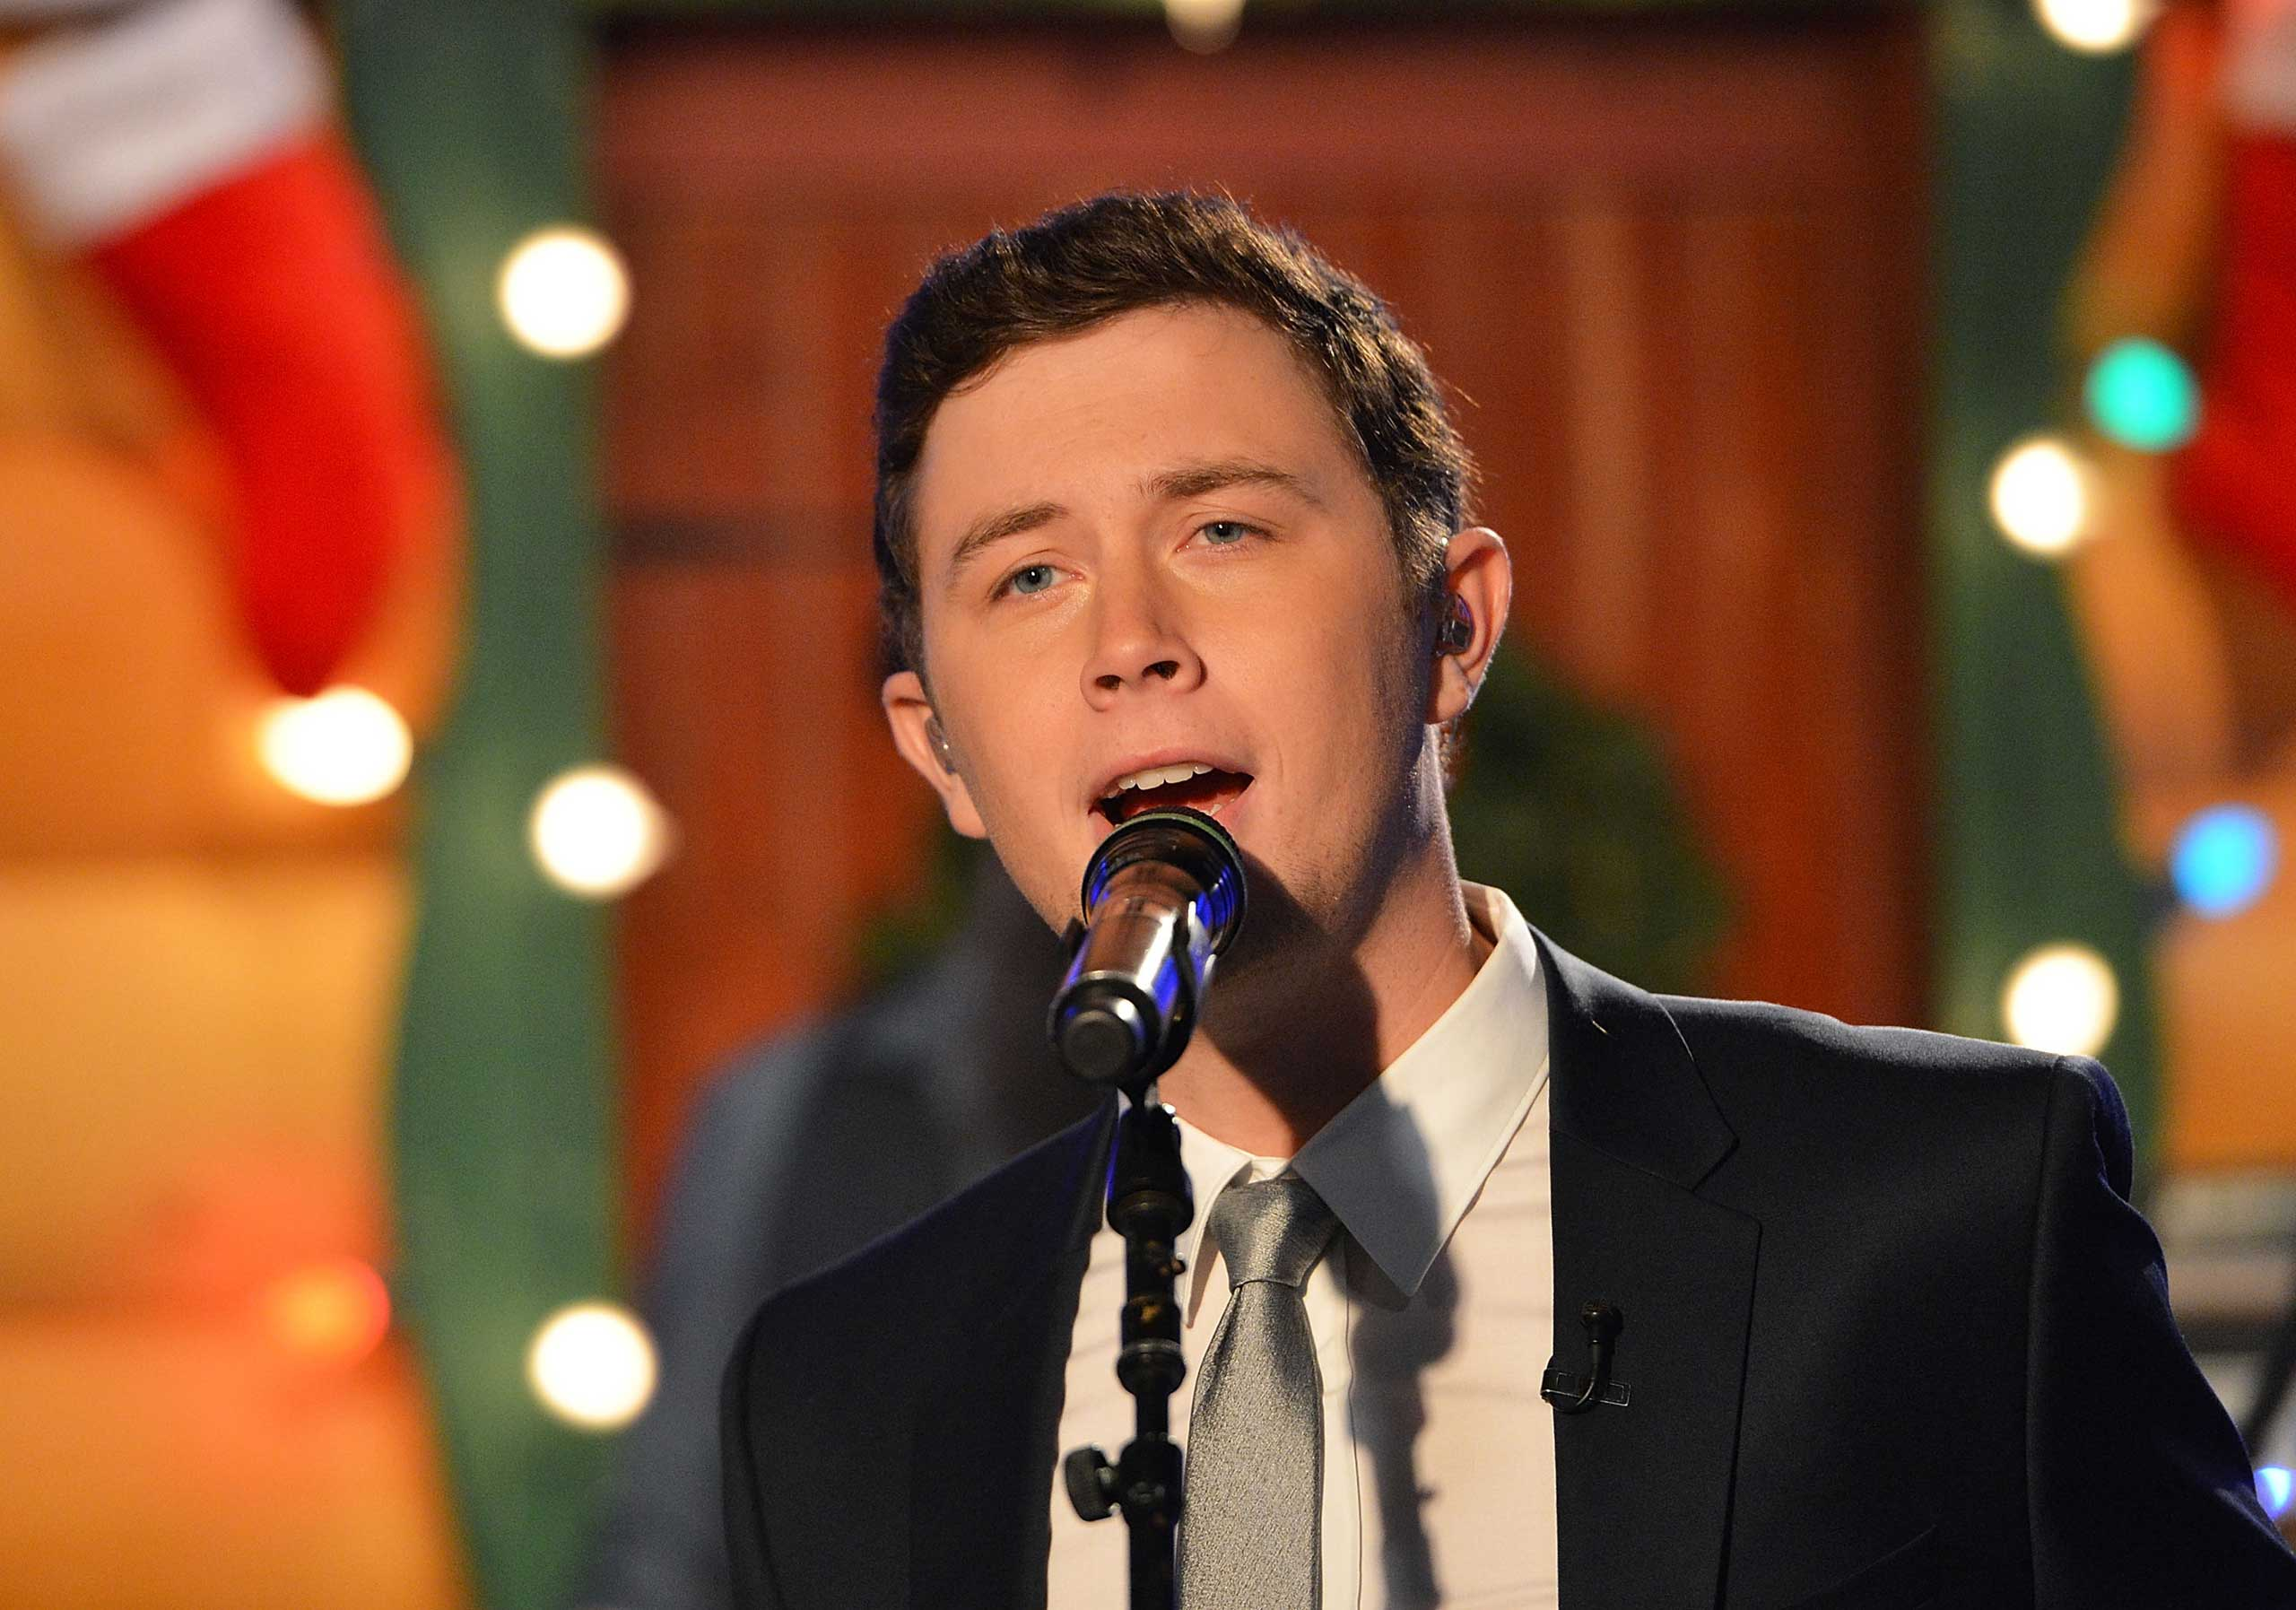 "<b>Scotty McCreery</b> performs during ""FOX &amp; Friends"" holiday special at FOX Studios in New York City on Dec. 4, 2014. McCreery won season 10 of <i>American Idol</i>."